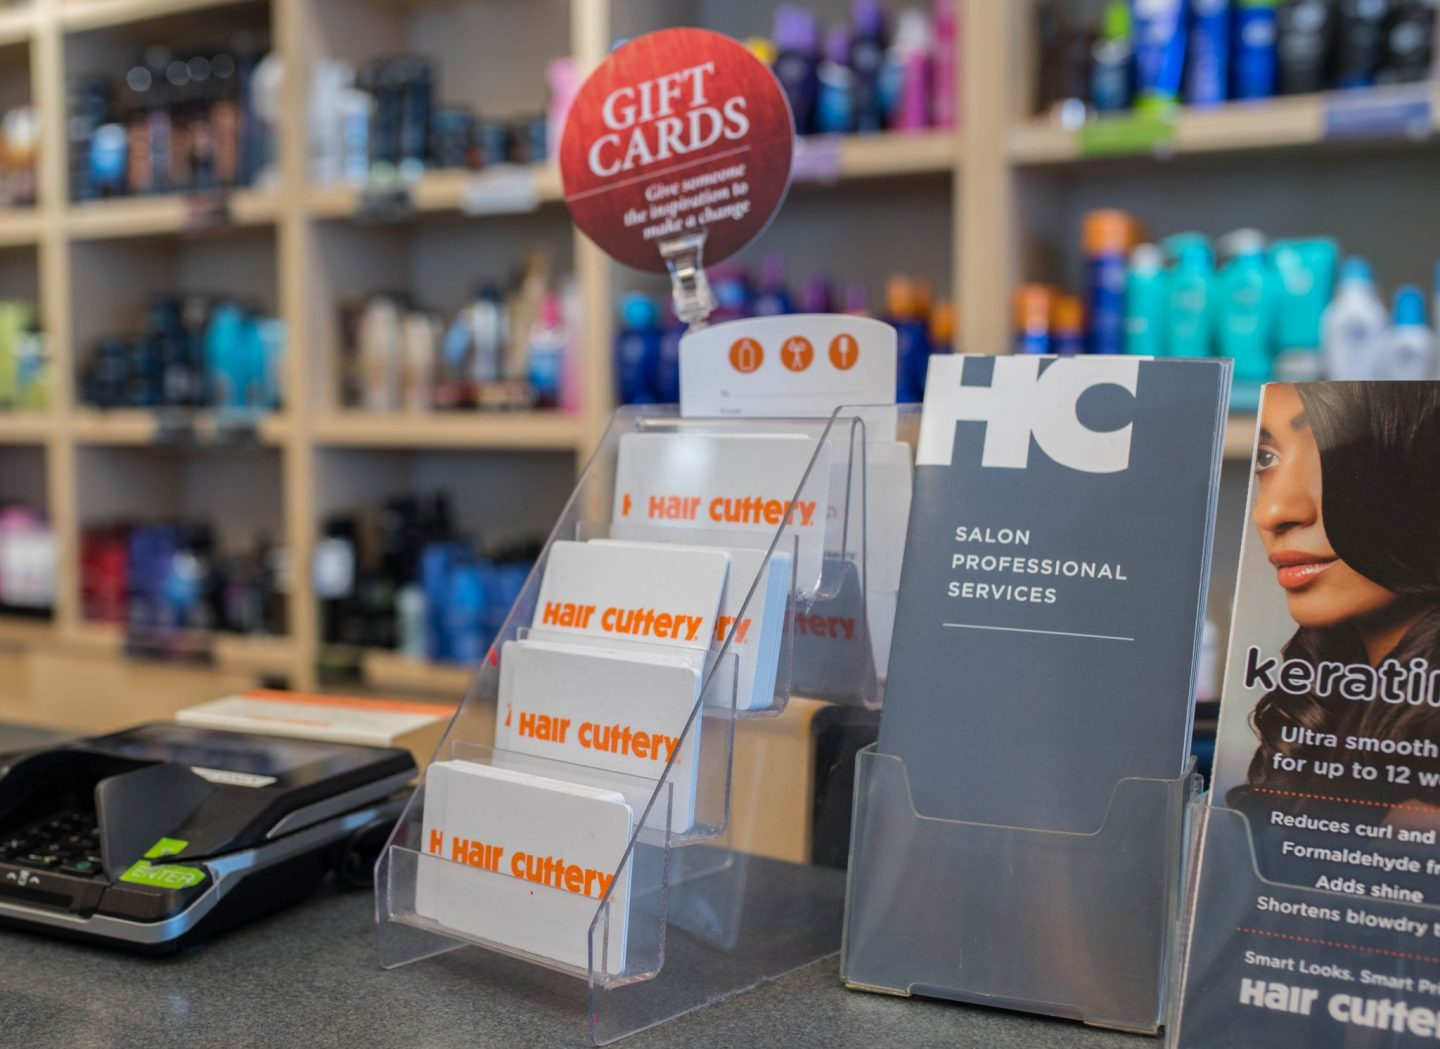 hair cuttery gift cards